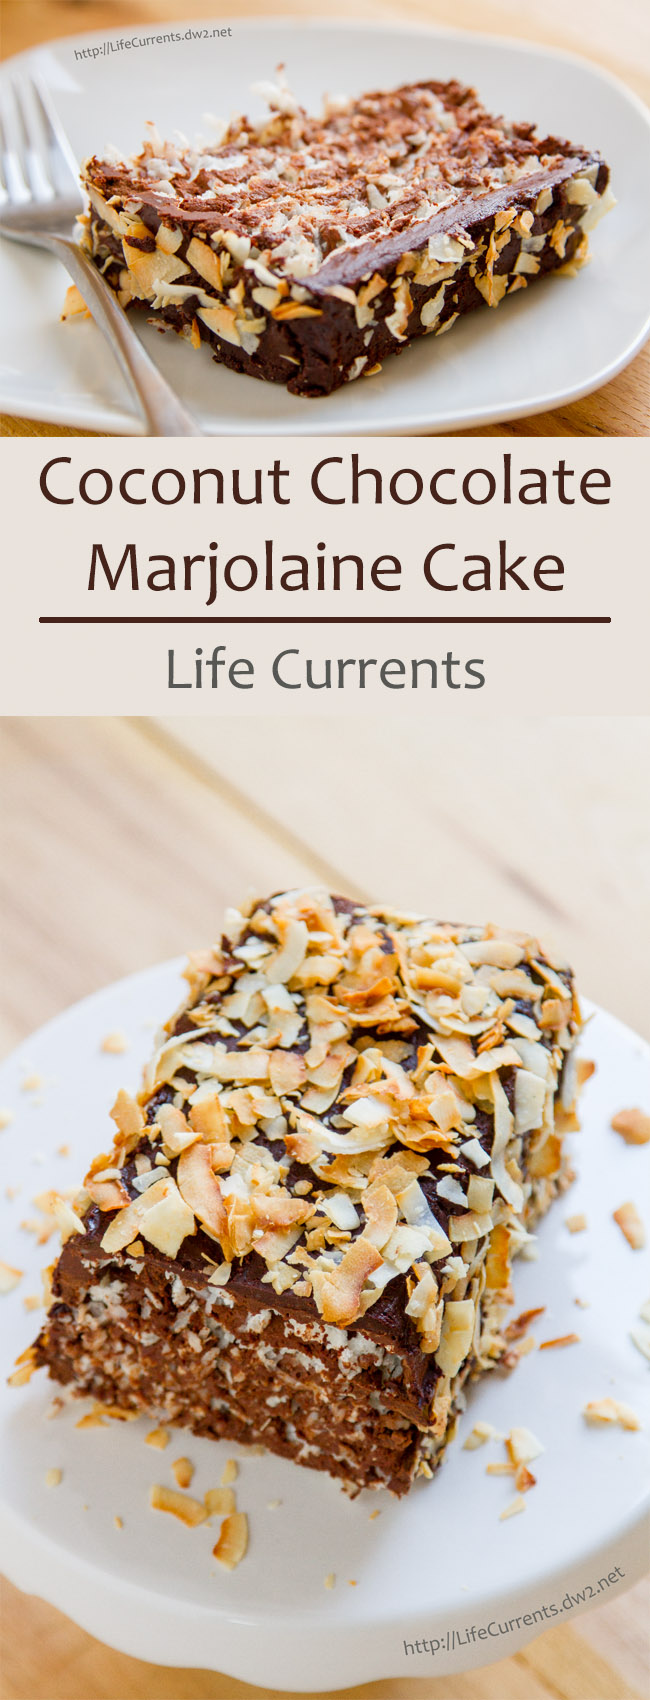 Coconut Chocolate Marjolaine